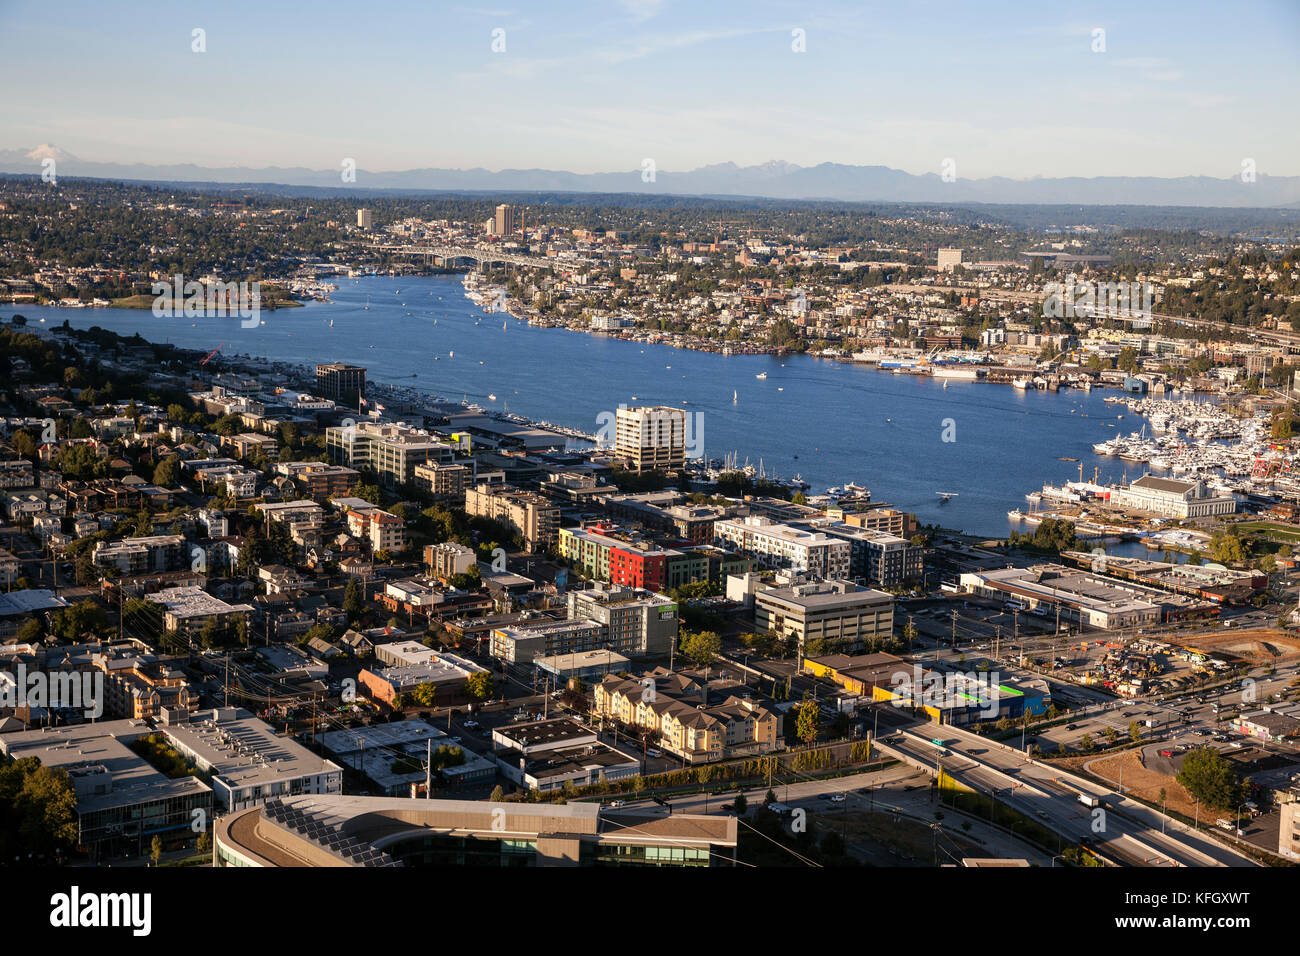 WA14156-00...WASHINGTON - View of Lake Union from the observation deck of the Space Needle in the Seattle Center. Stock Photo